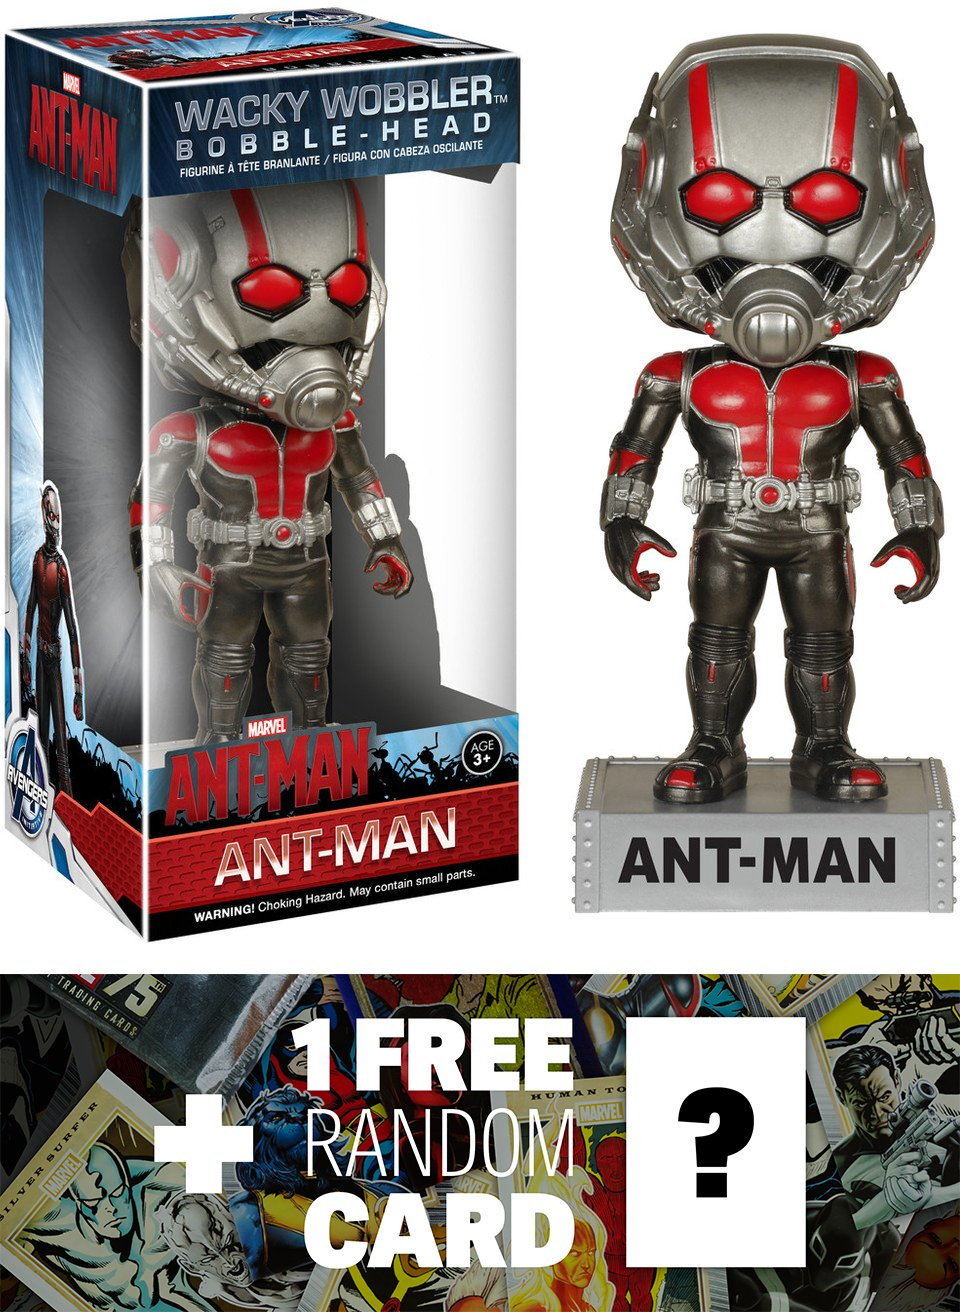 Ant-Man Bobble Head Figure: Ant-Man x Wacky Wobblers Series + 1 FREE Official Marvel Trading Card Bundle [49645] B012JHQZAU